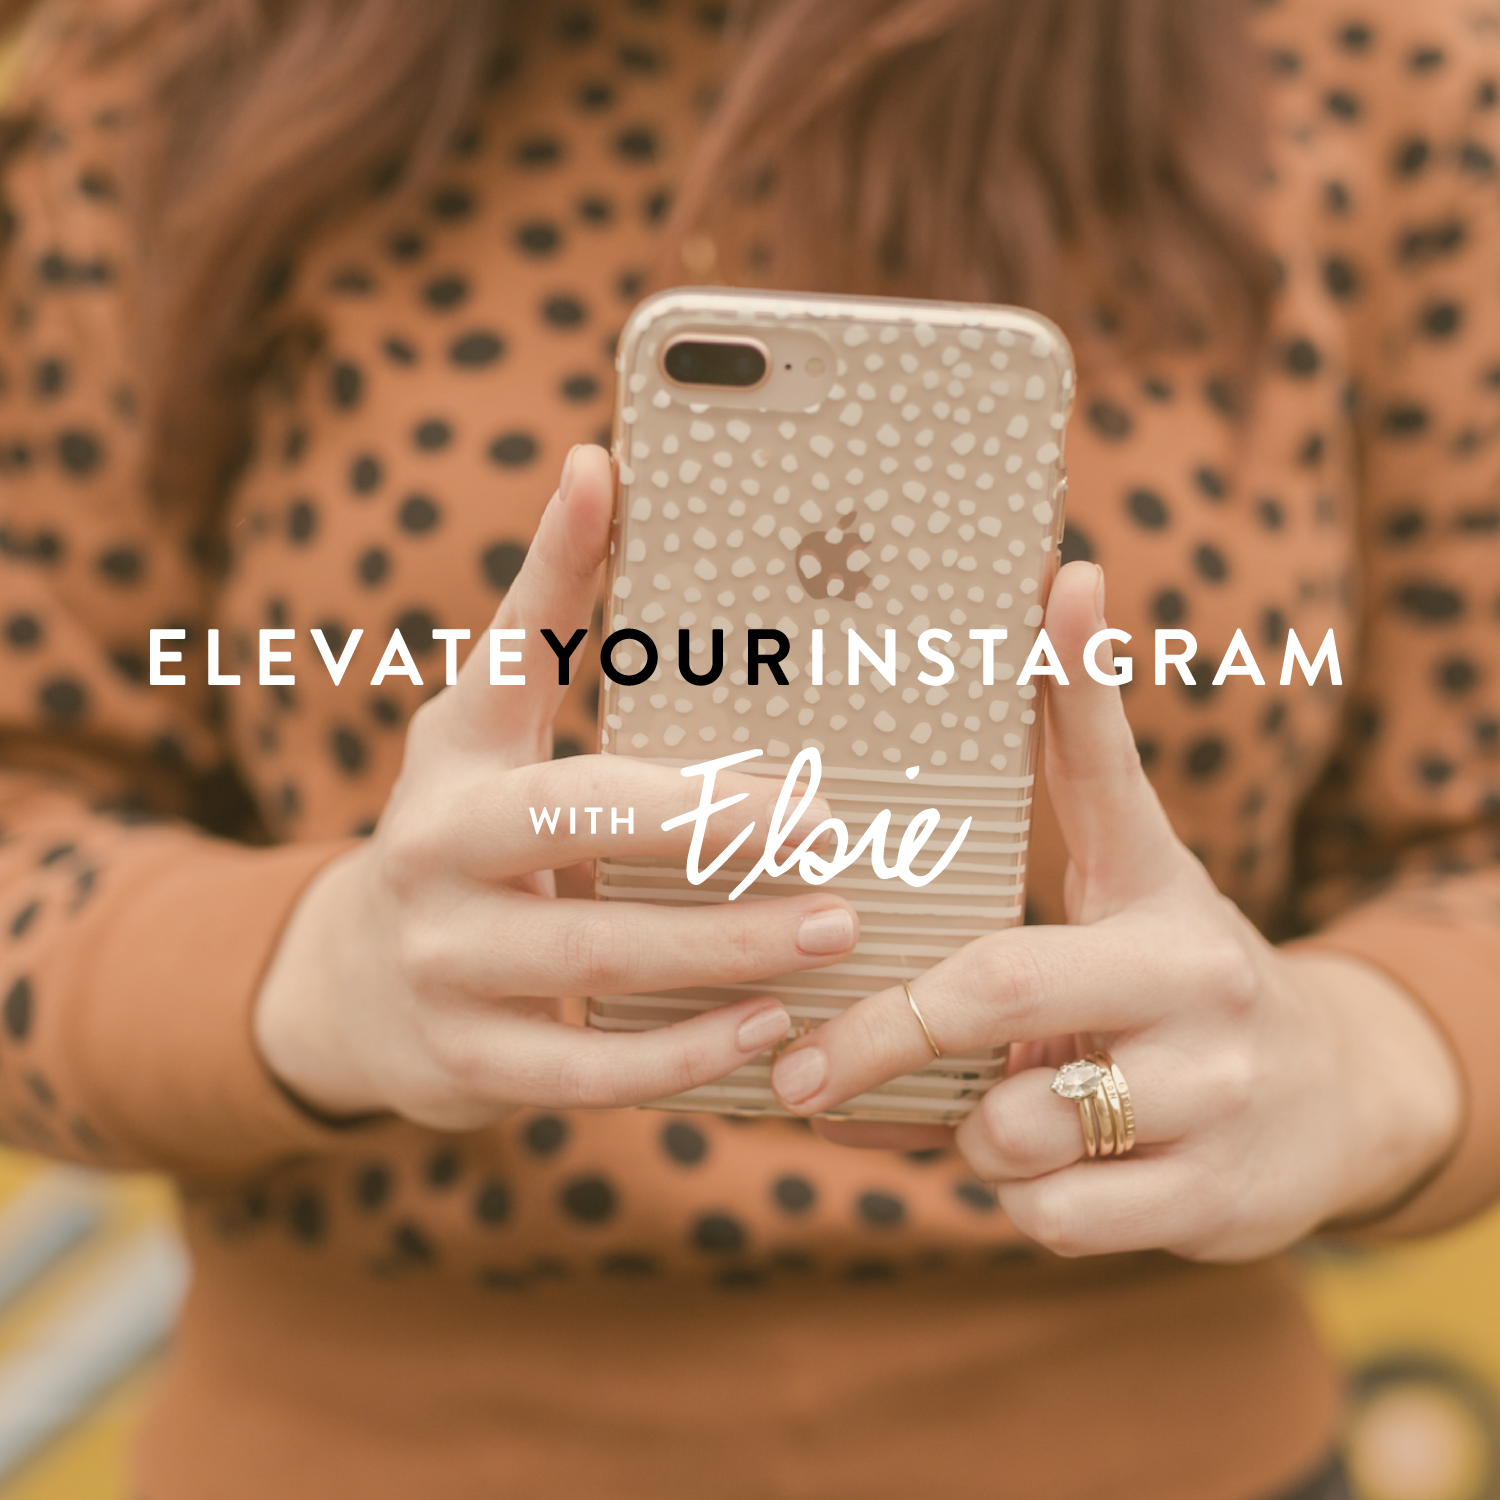 Our New Course is Open! Elevate Your Instagram